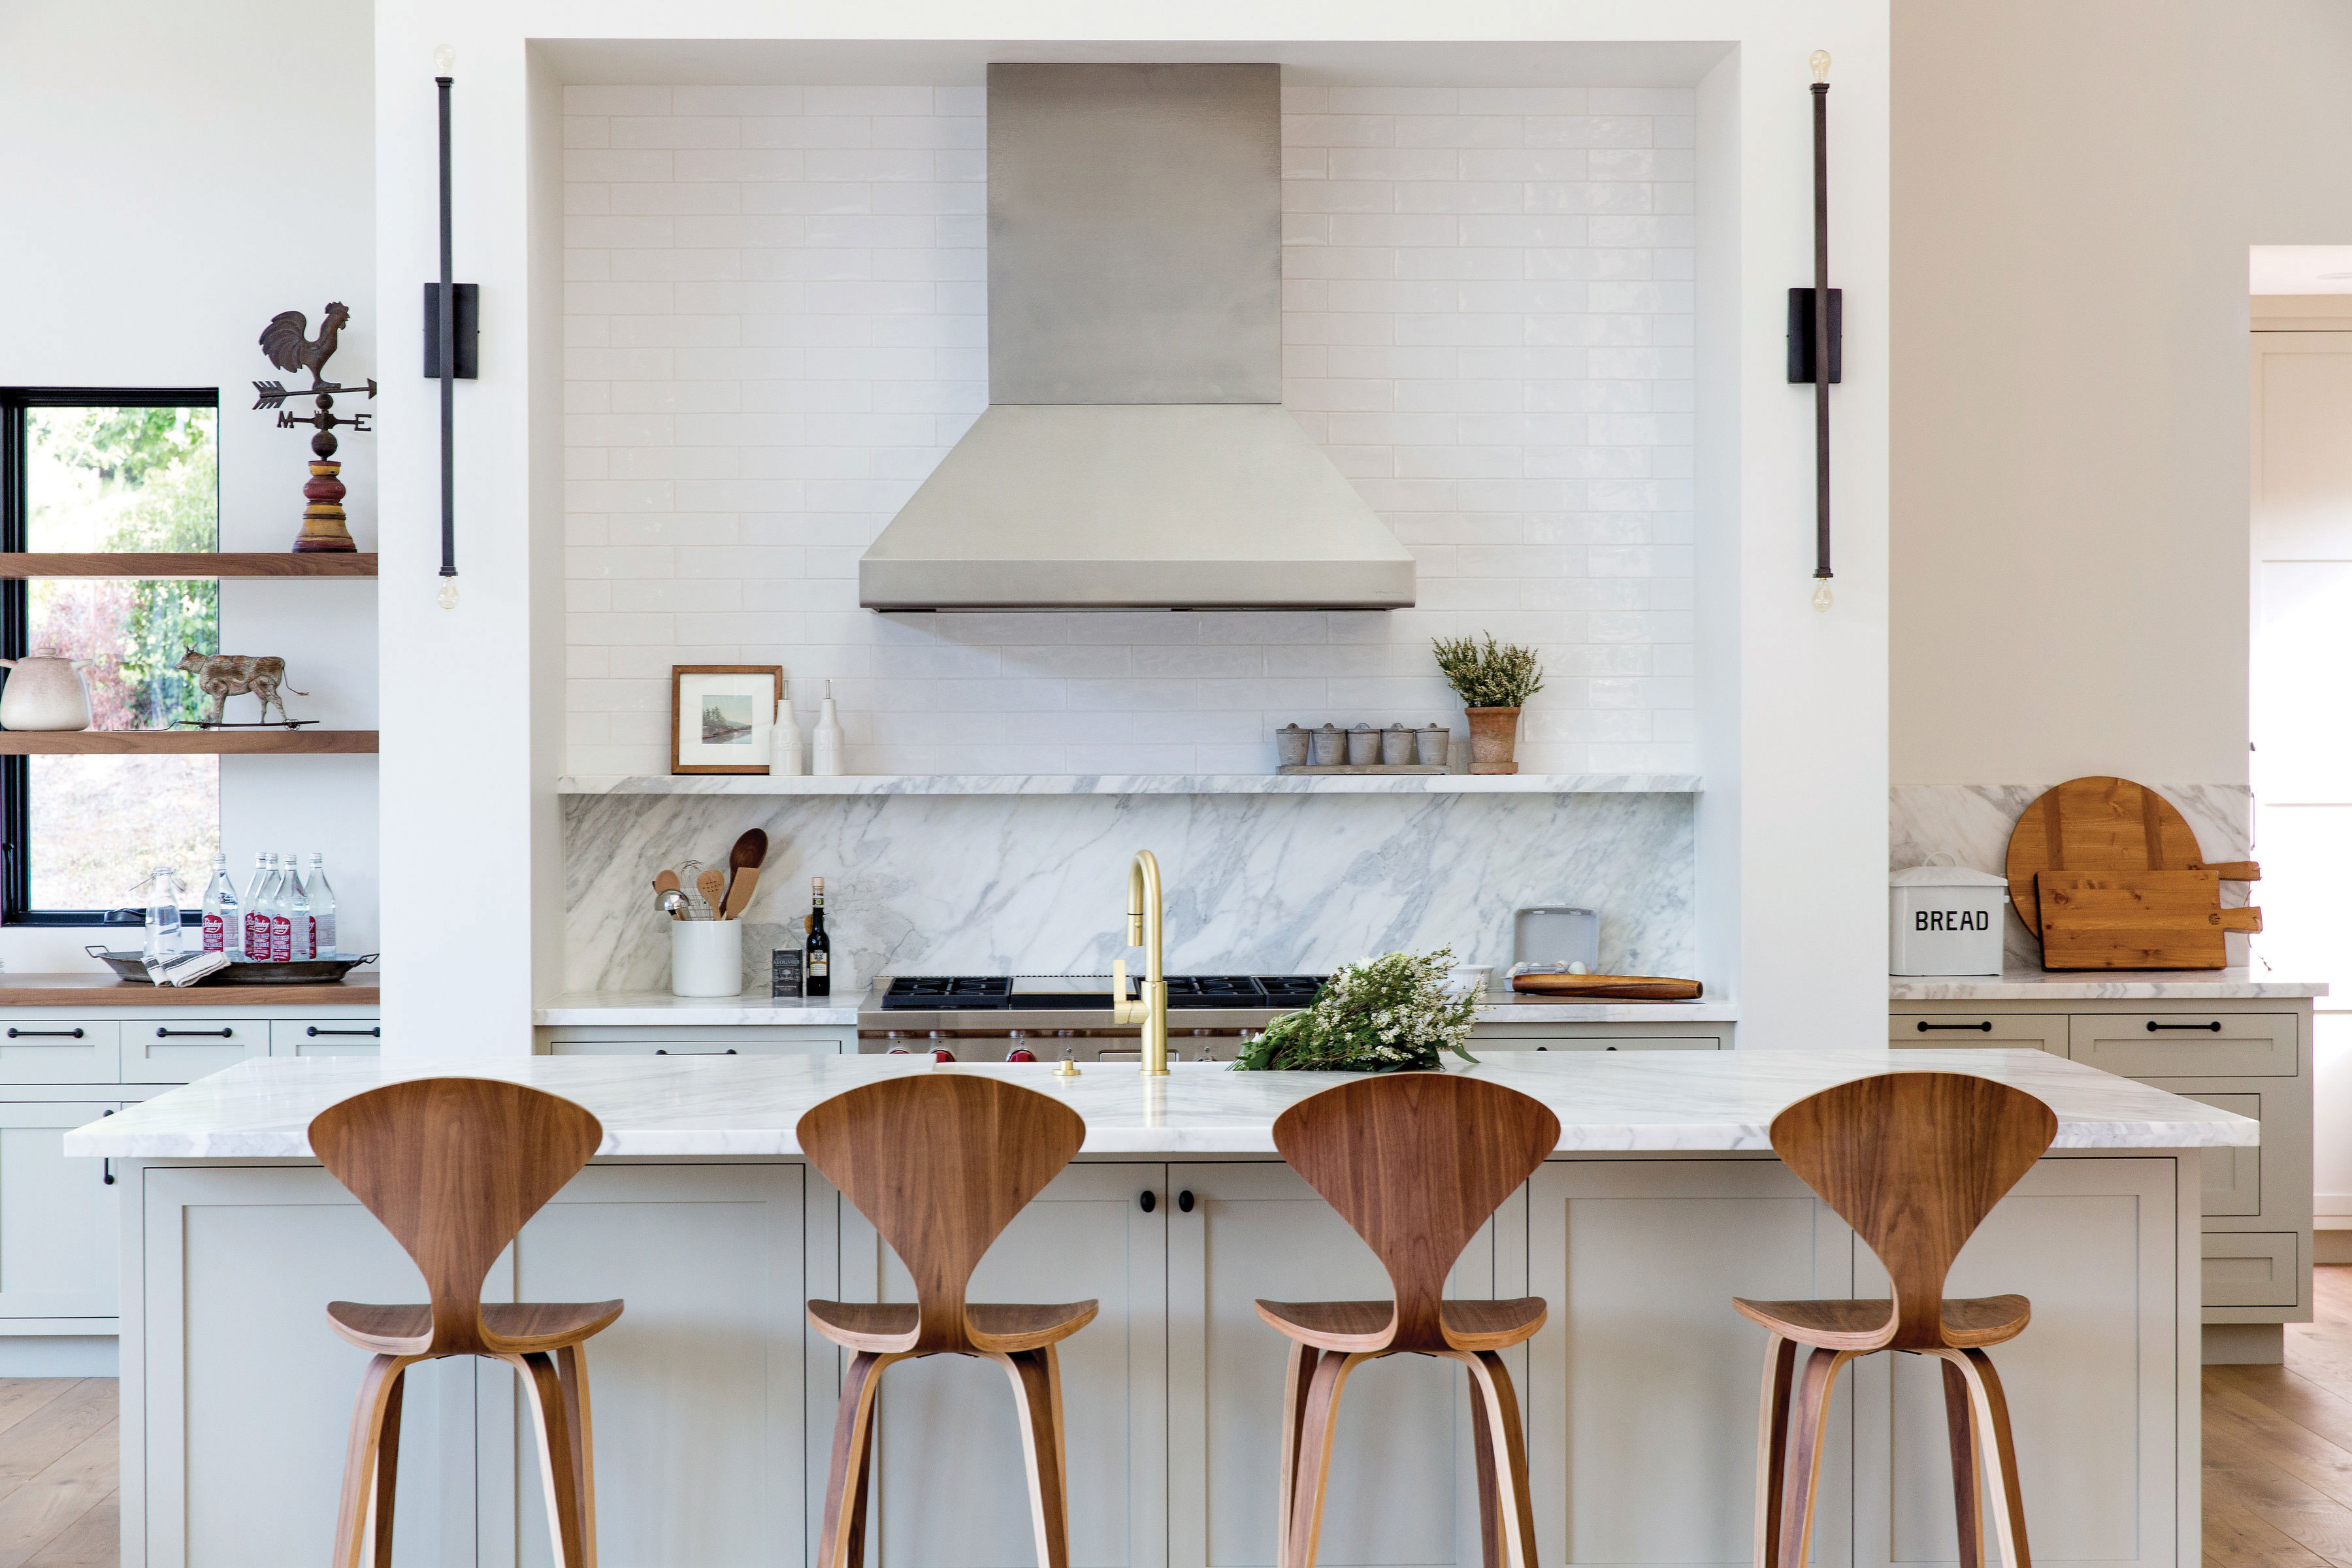 modern farmhouse kitchen mod wooden chairs marble backsplash and gold brass faucet fixtures